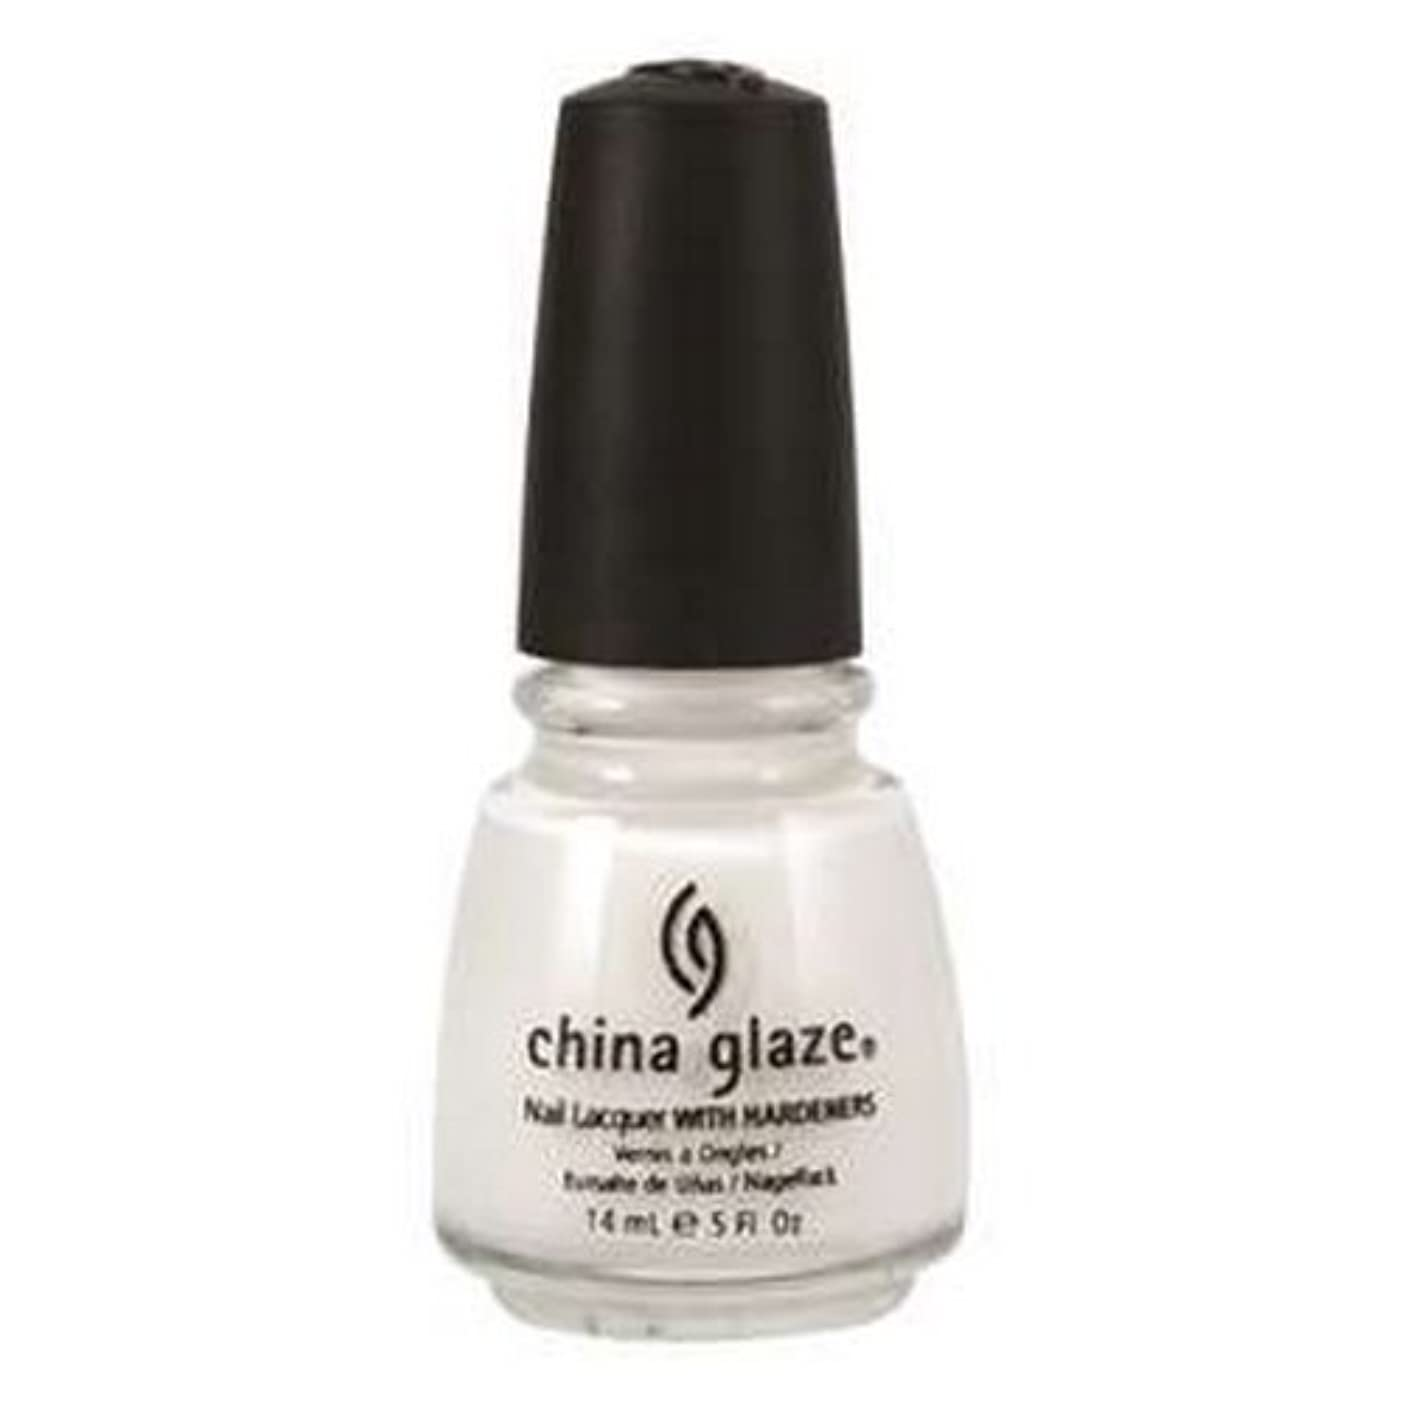 高架材料きらめく(3 Pack) CHINA GLAZE Nail Lacquer with Nail Hardner 2 - Snow (並行輸入品)